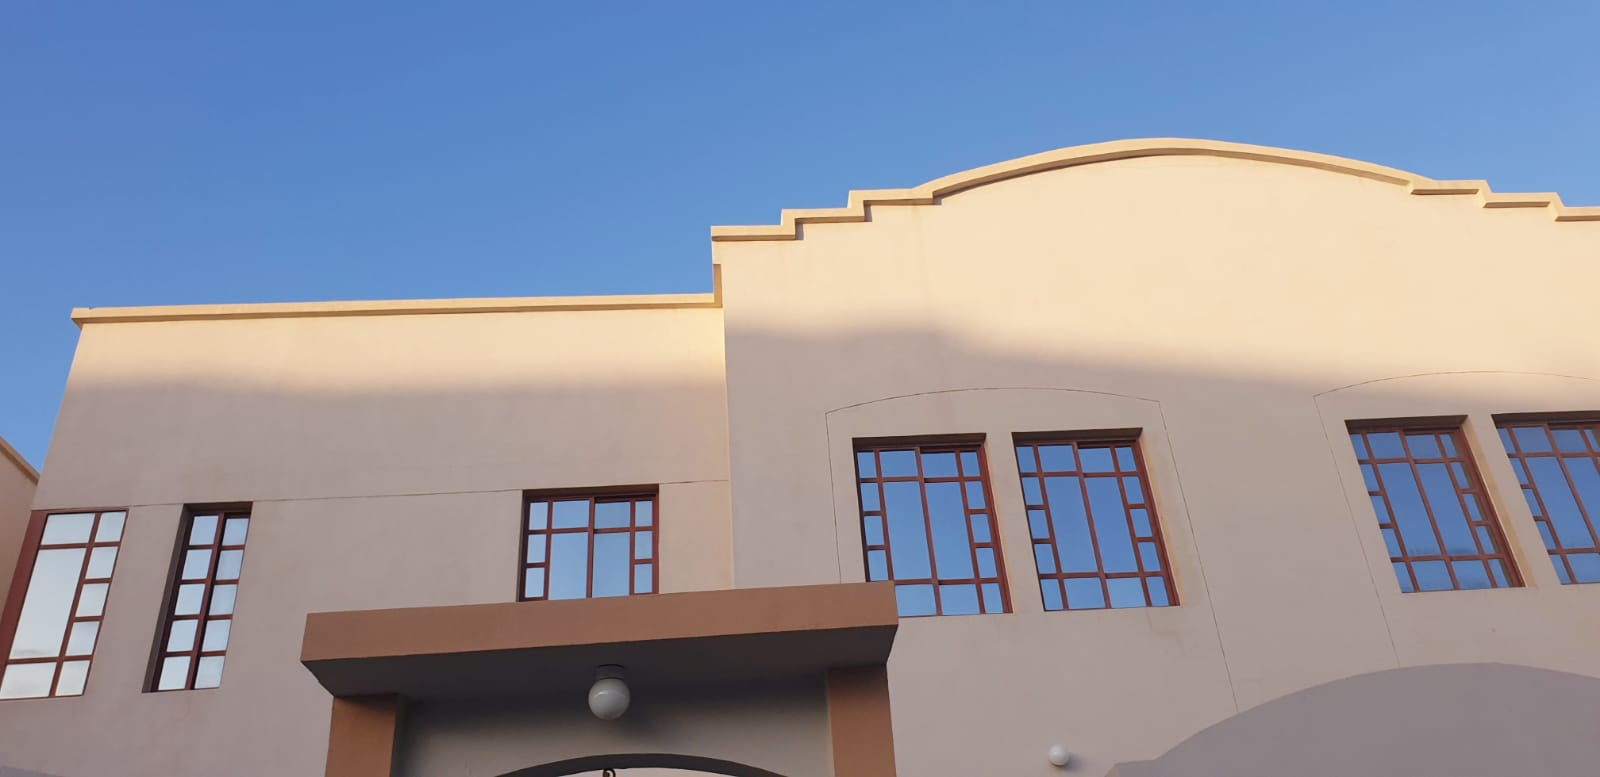 7 Bedroom Villa Available for Rent for staffs in Ain Khaled Area